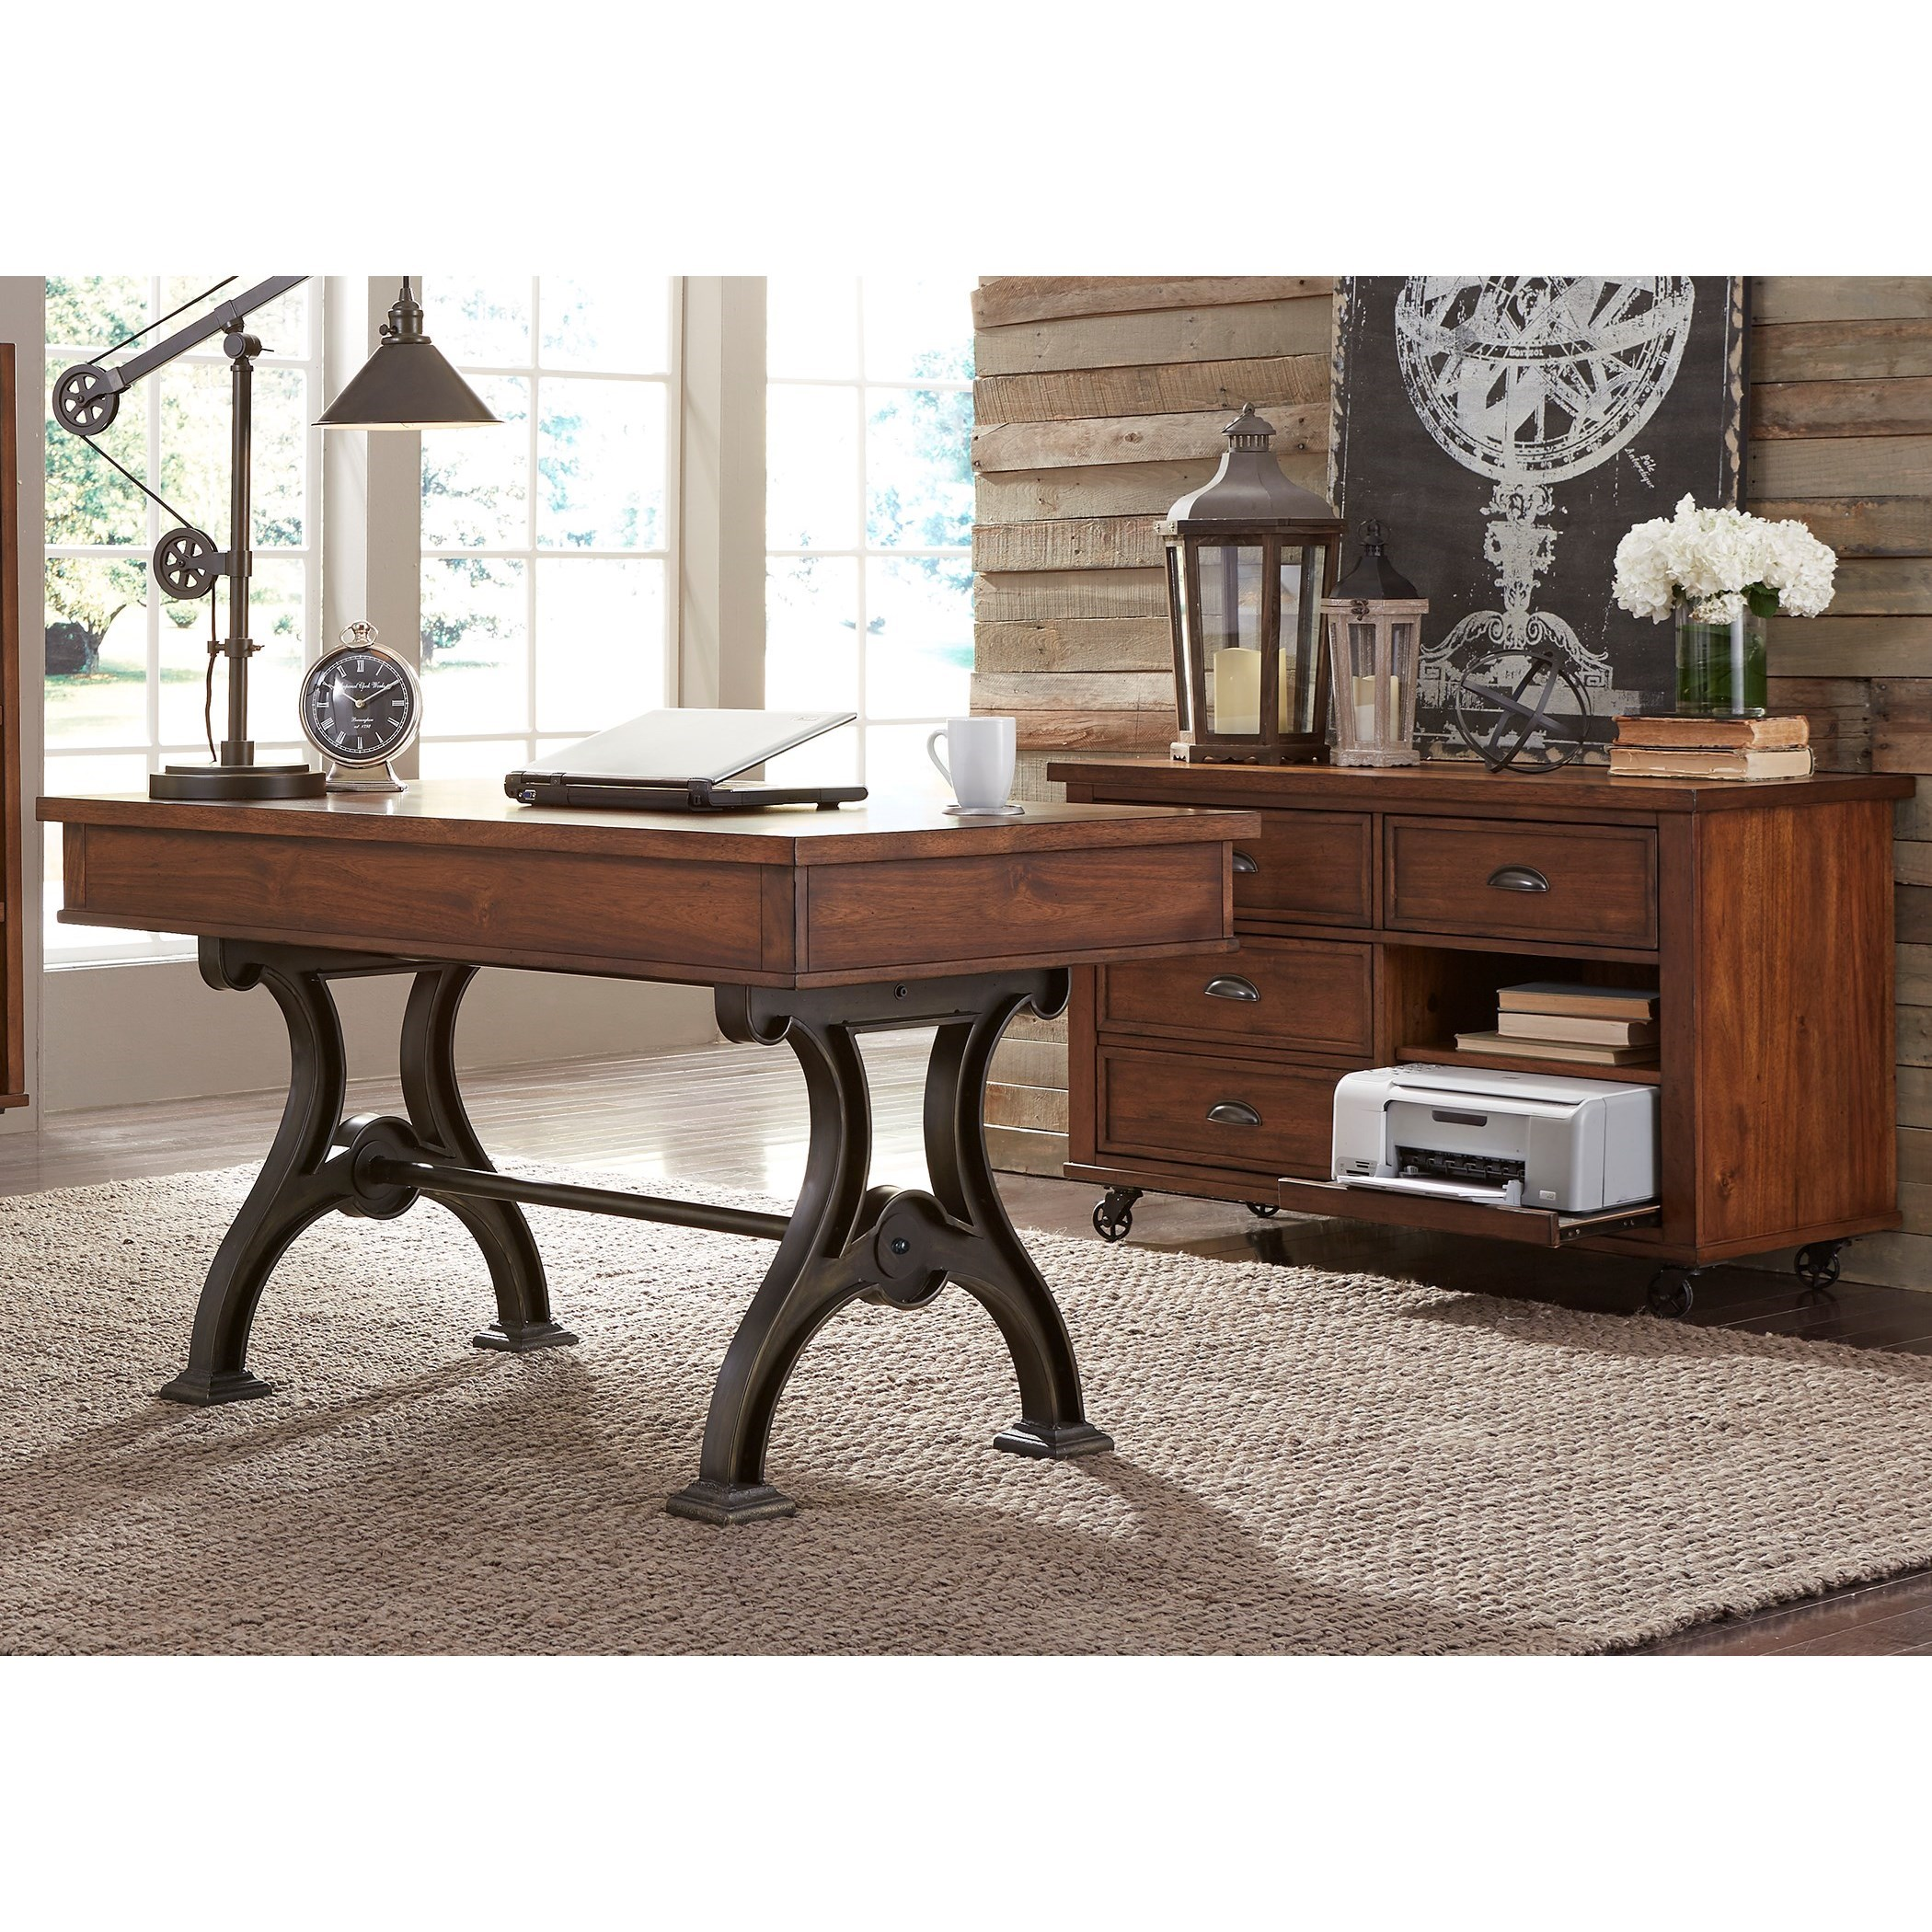 Arlington Desk and Credenza by Liberty Furniture at Northeast Factory Direct